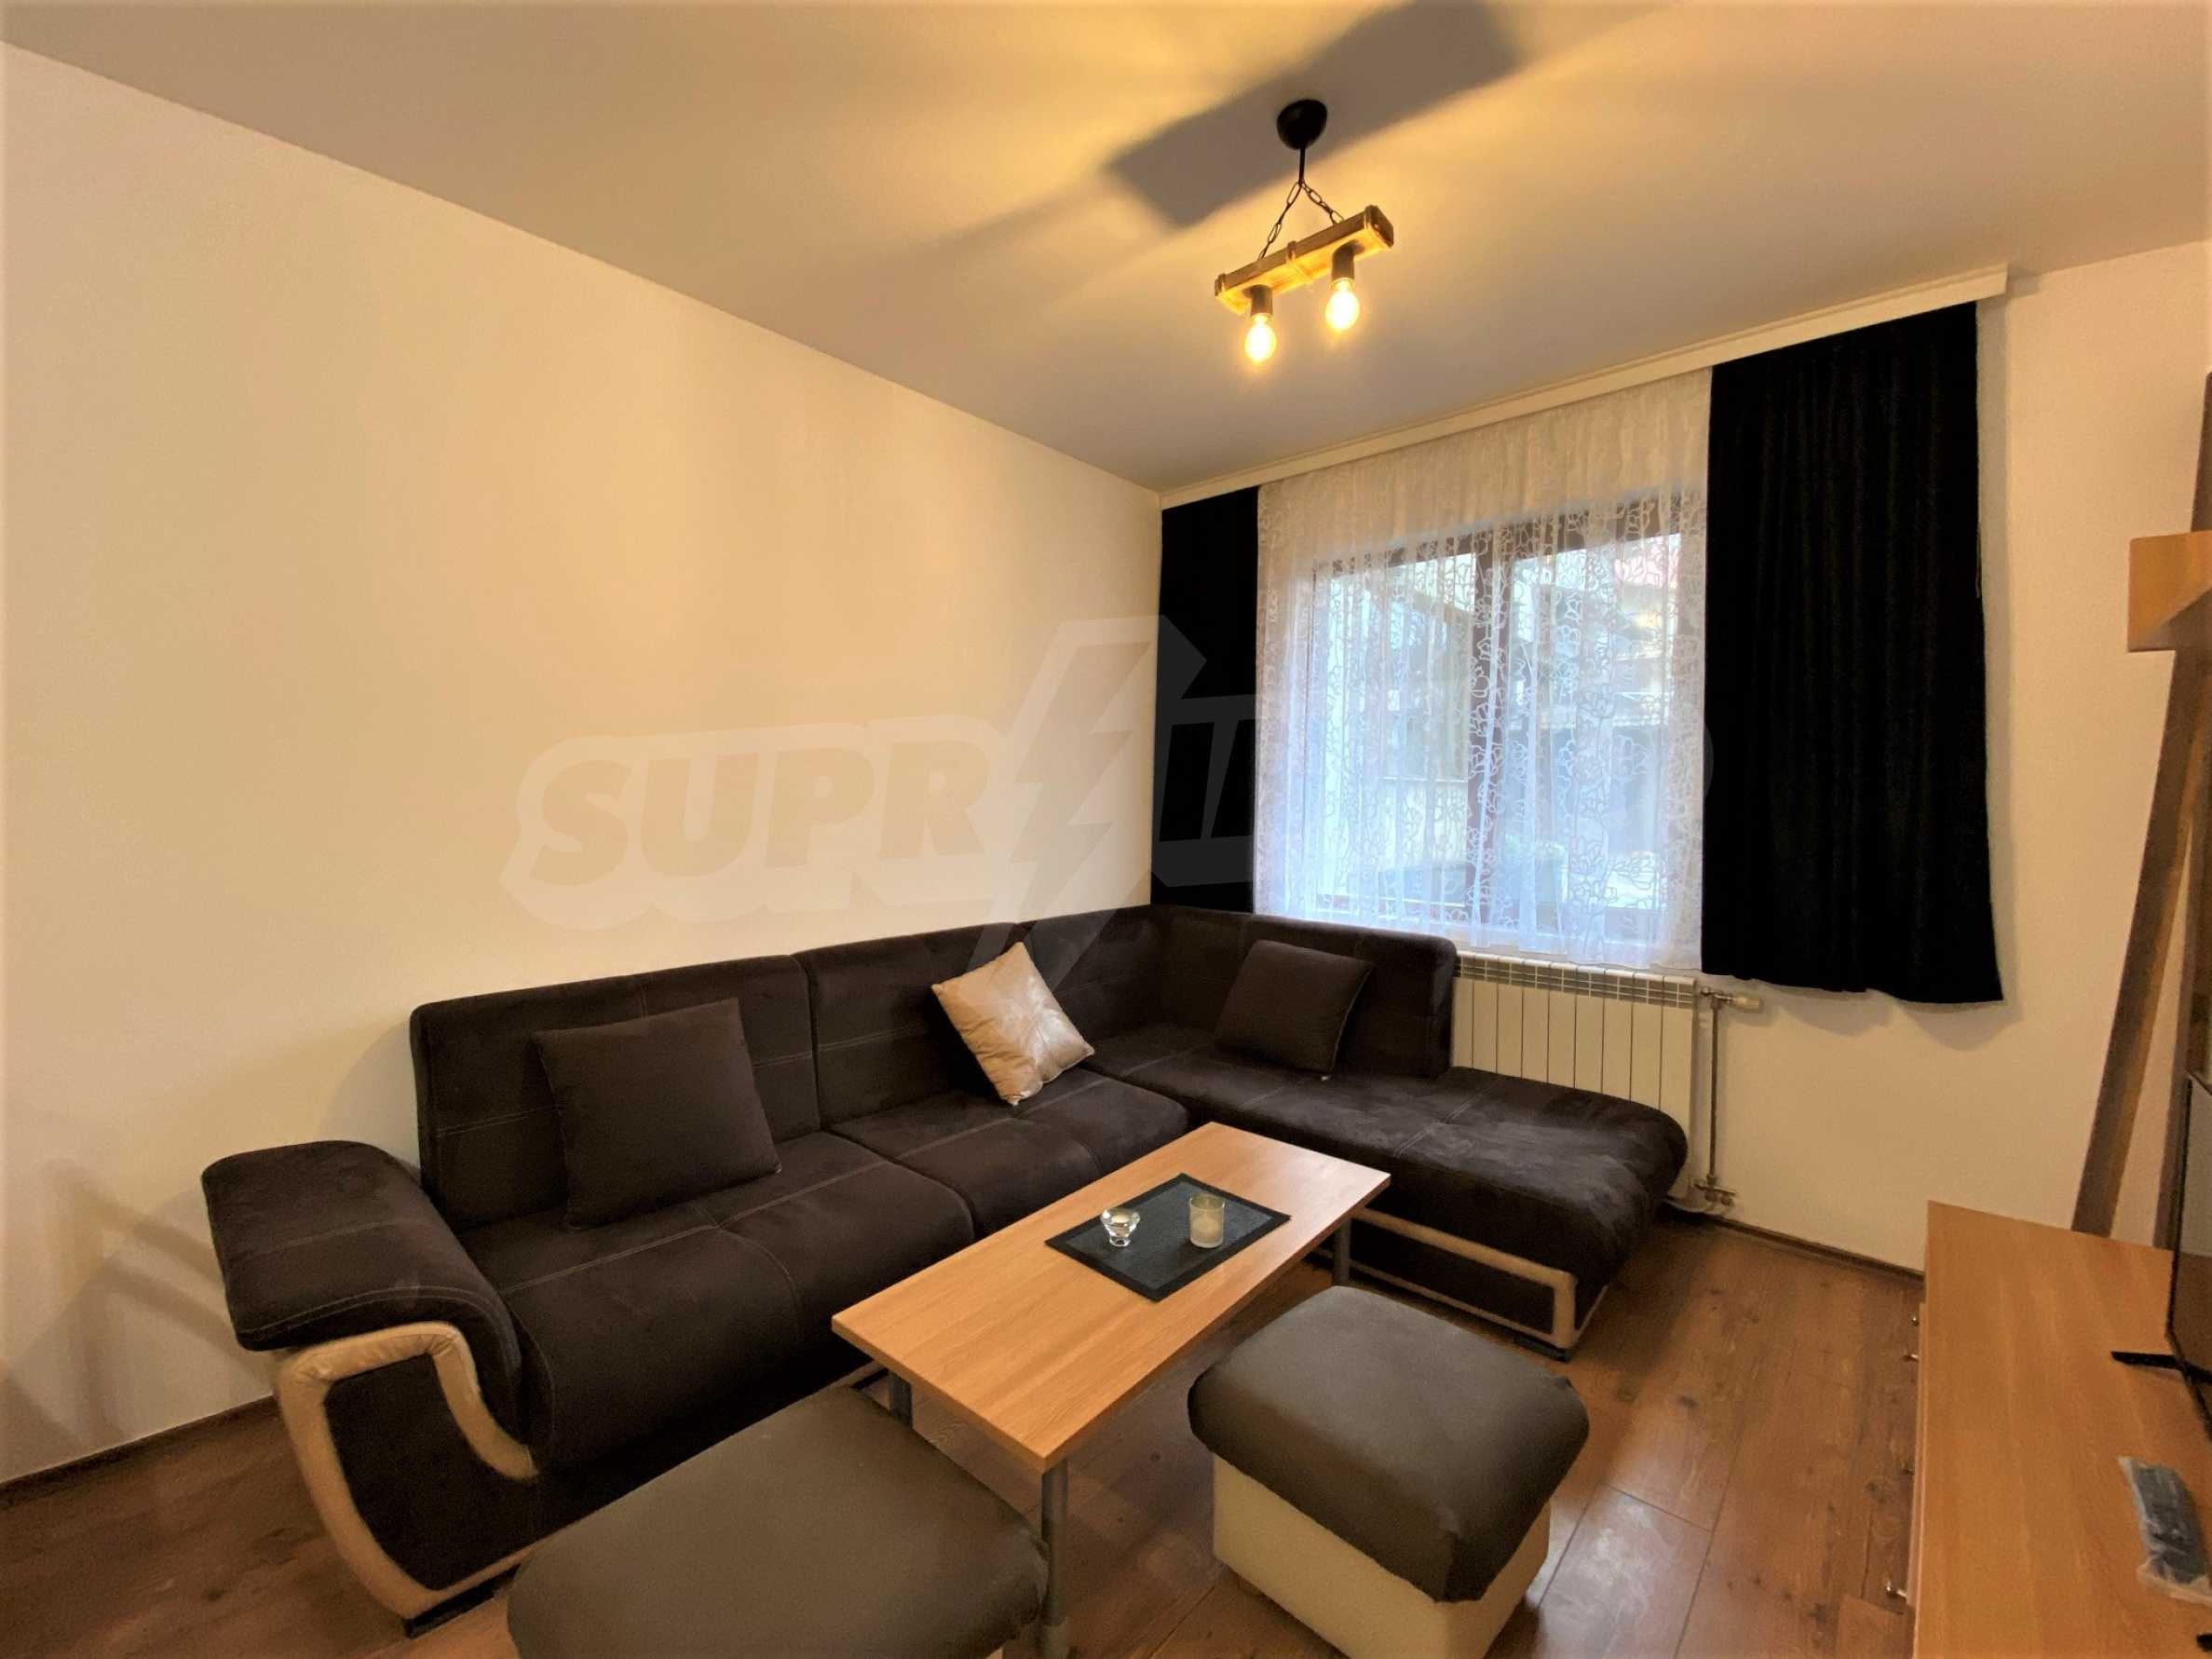 Two-bedroom apartment in a well-maintained building in Bansko 1